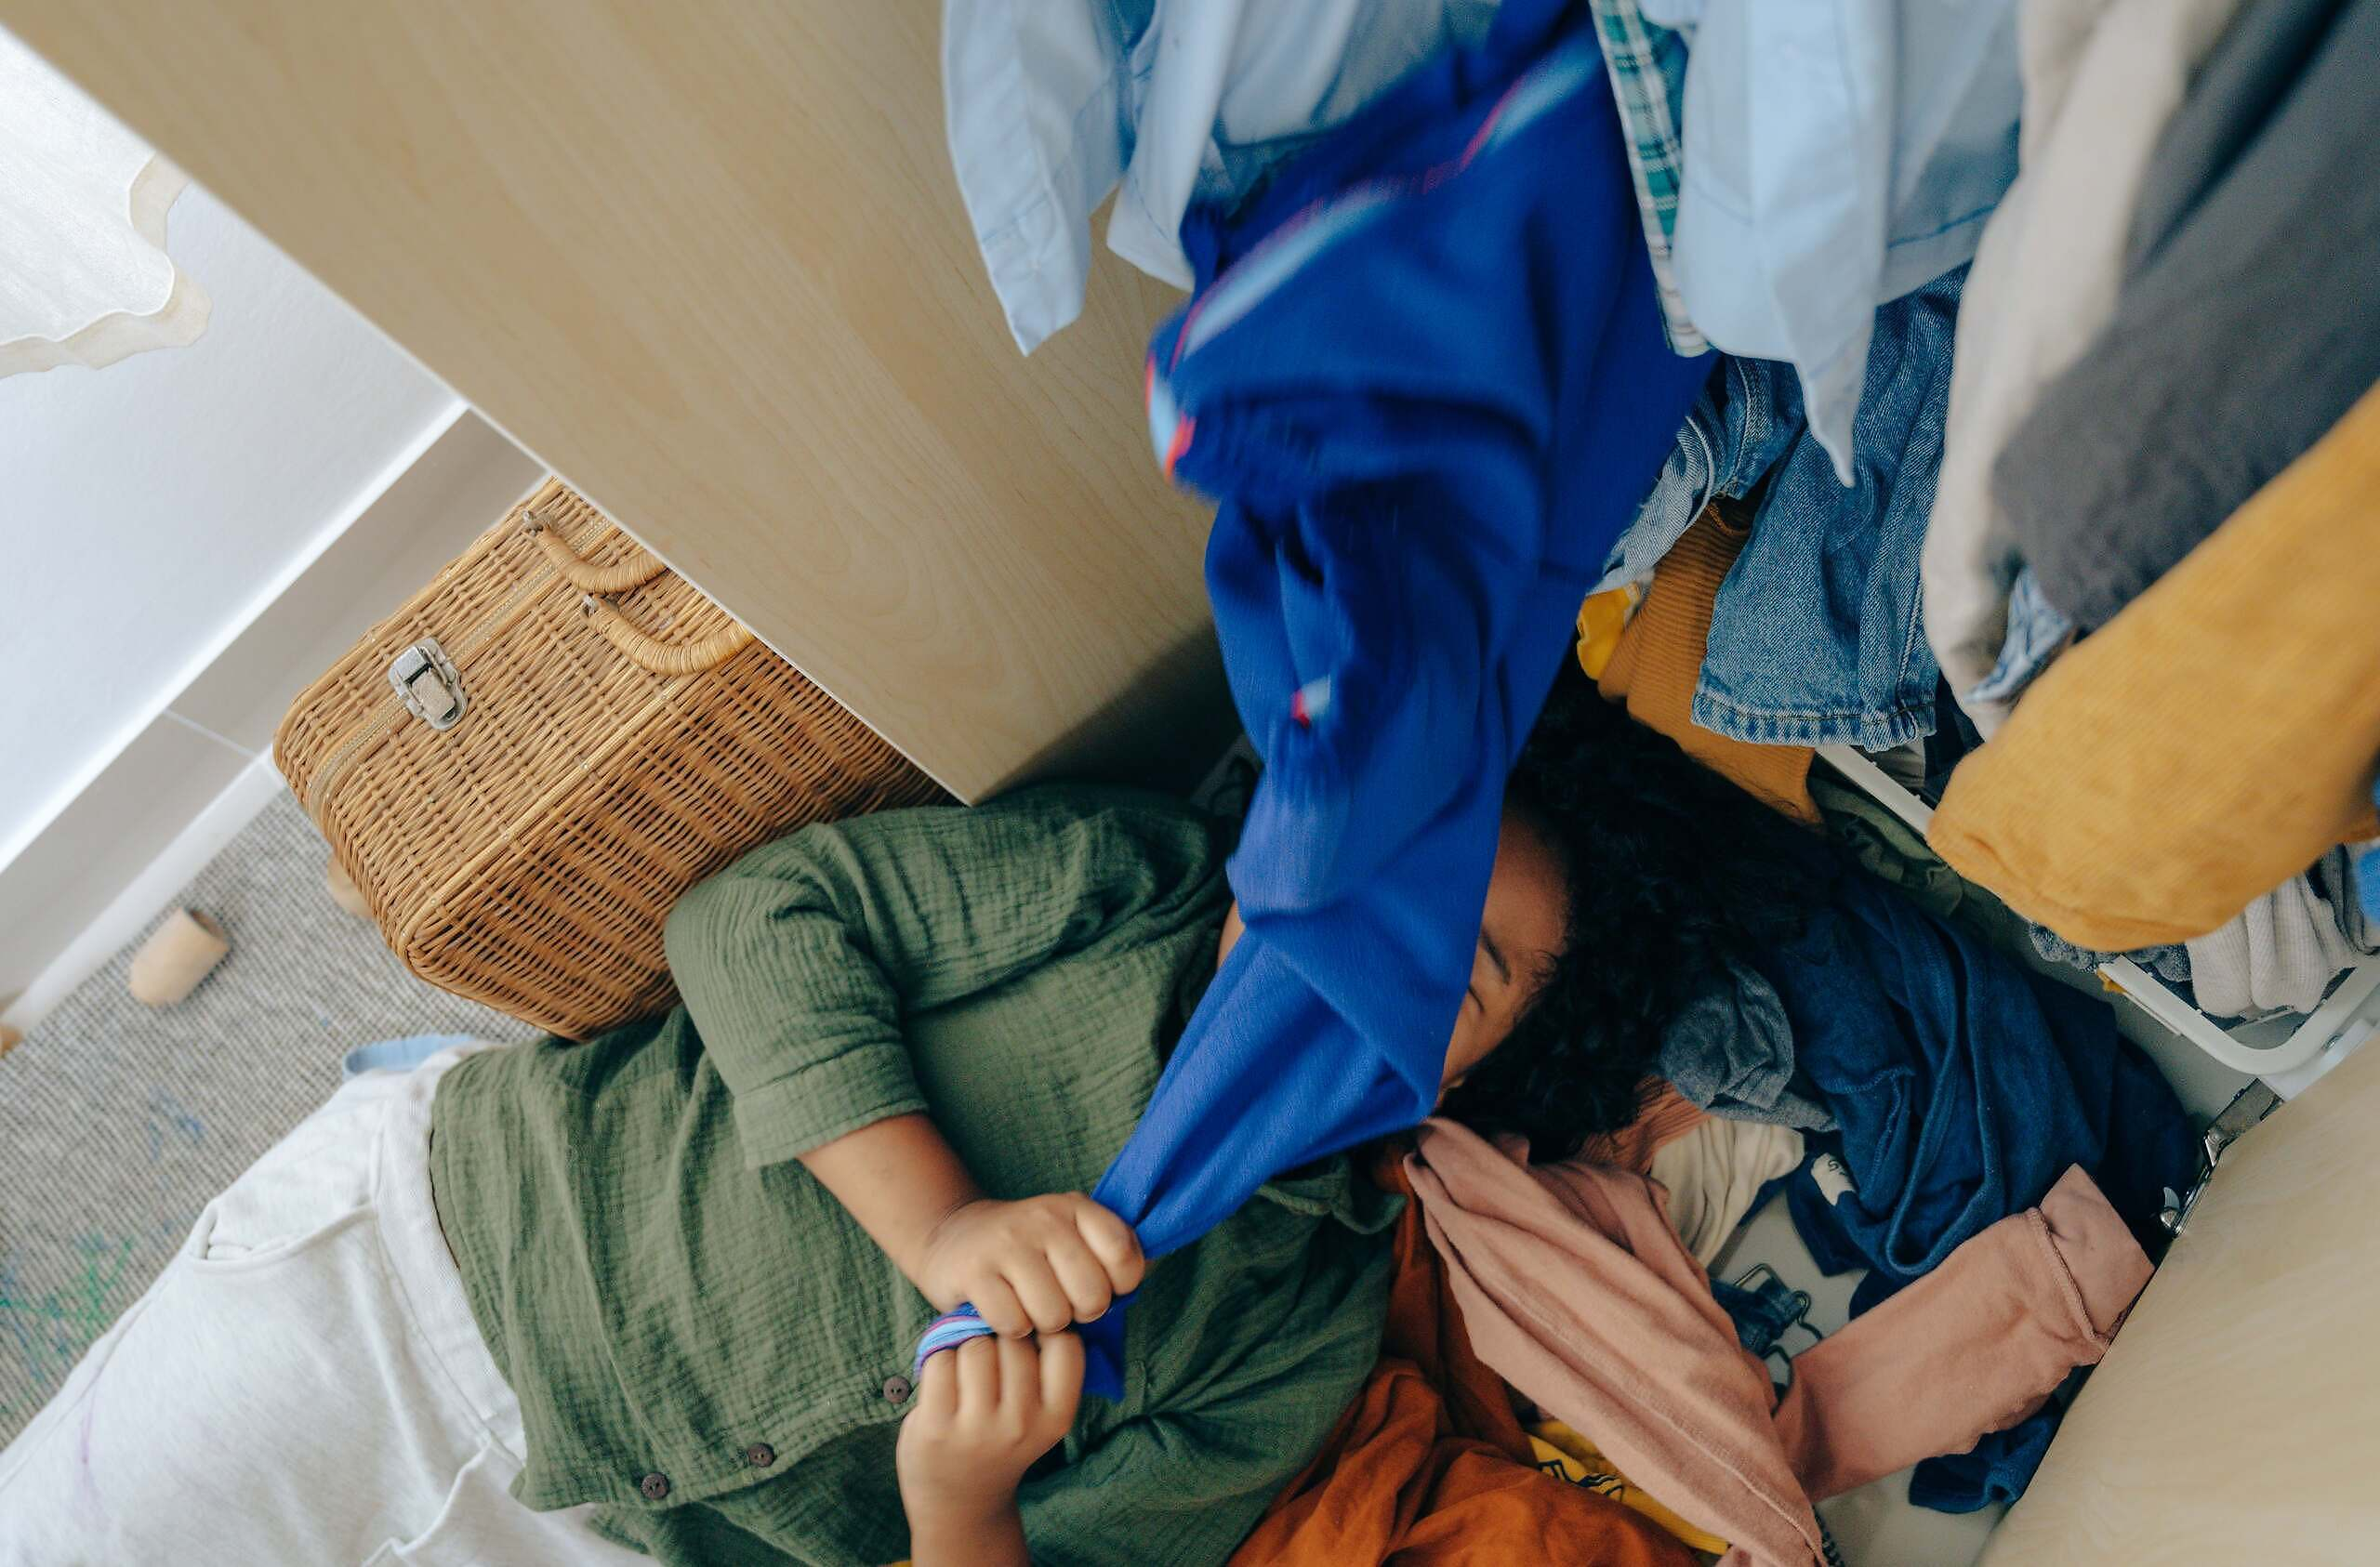 anonymous-black-girl-lying-on-stack-of-clothes-in-bedroom-4545965